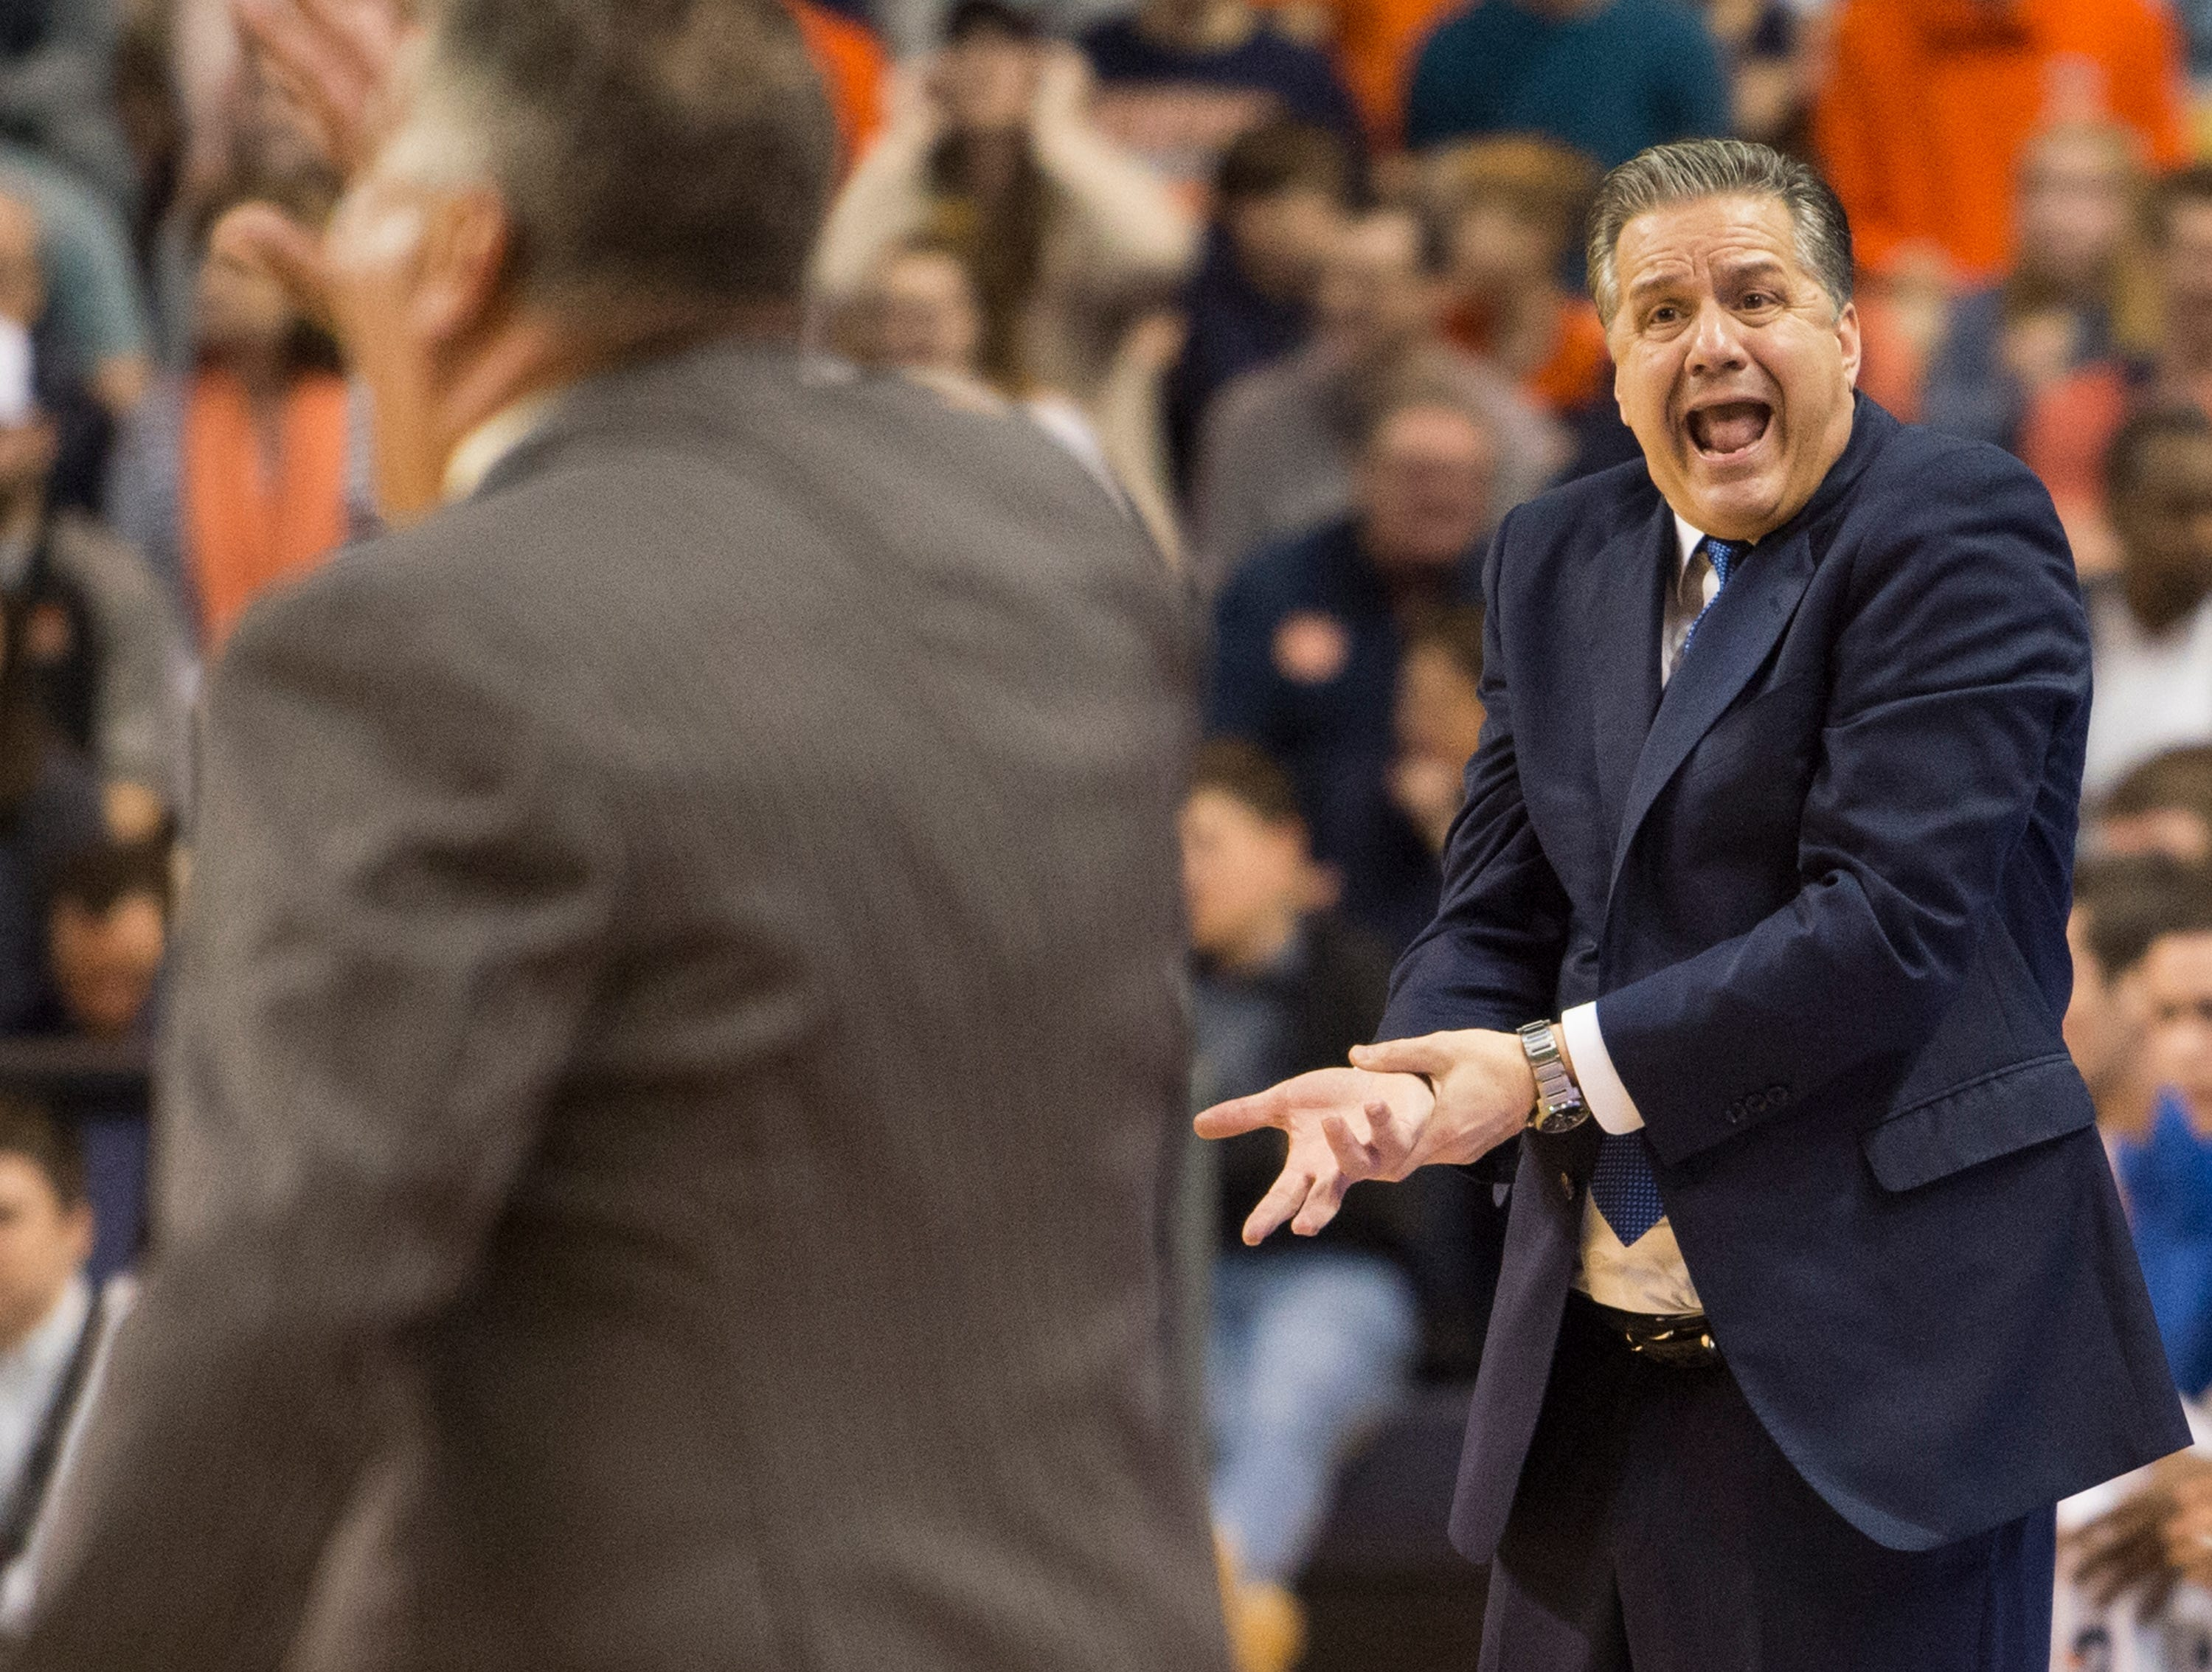 Kentucky head coach John Calipari complains about a call at Auburn Arena in Auburn, Ala., on Saturday, Jan. 19, 2019. Kentucky leads Auburn 35-27 at halftime.